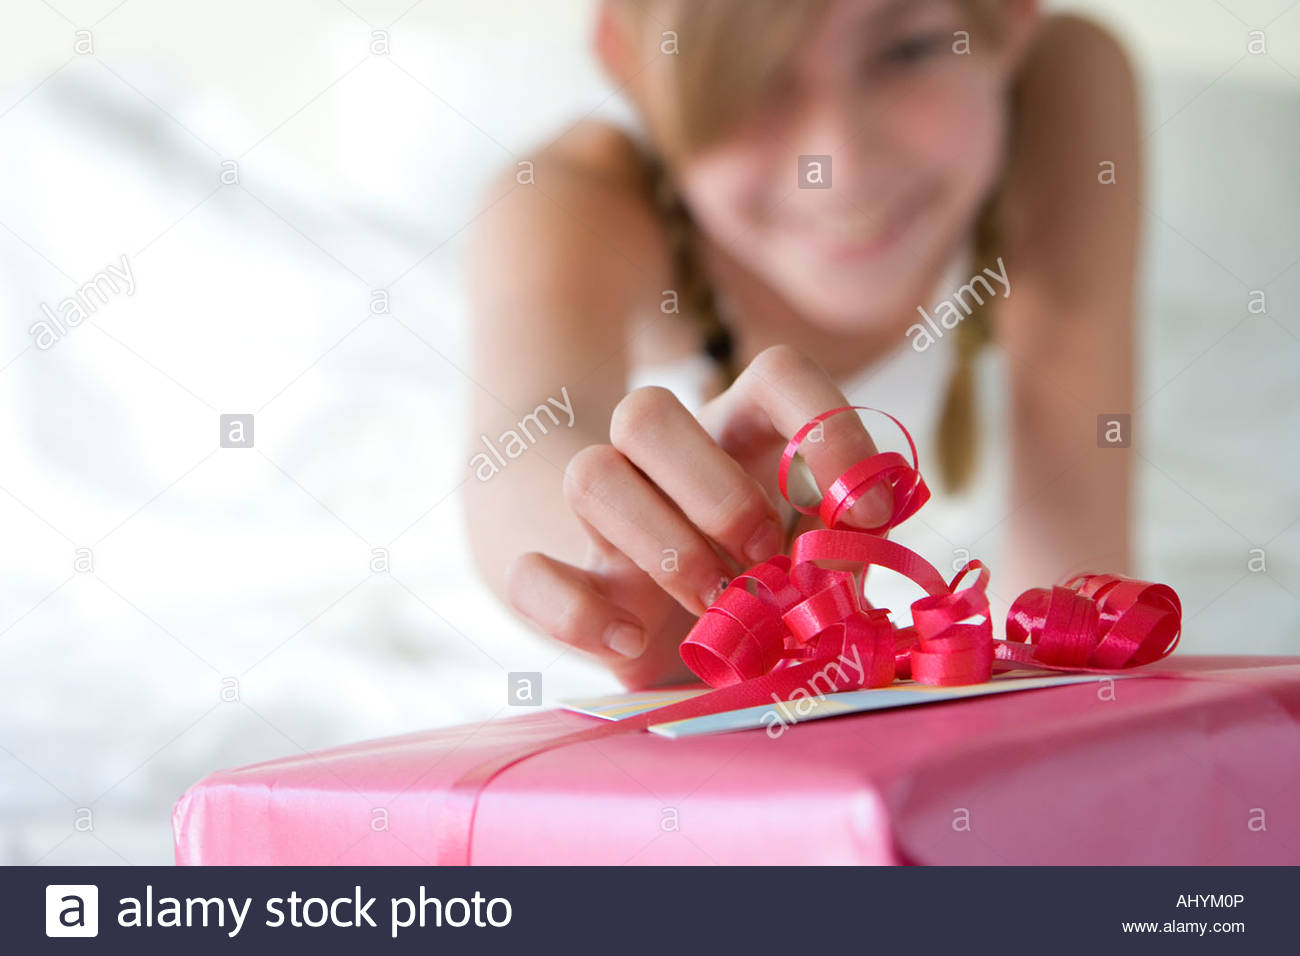 Girl  touching red ribbon with finger on pink birthday gift, smiling, front view, focus on foreground - Stock Image